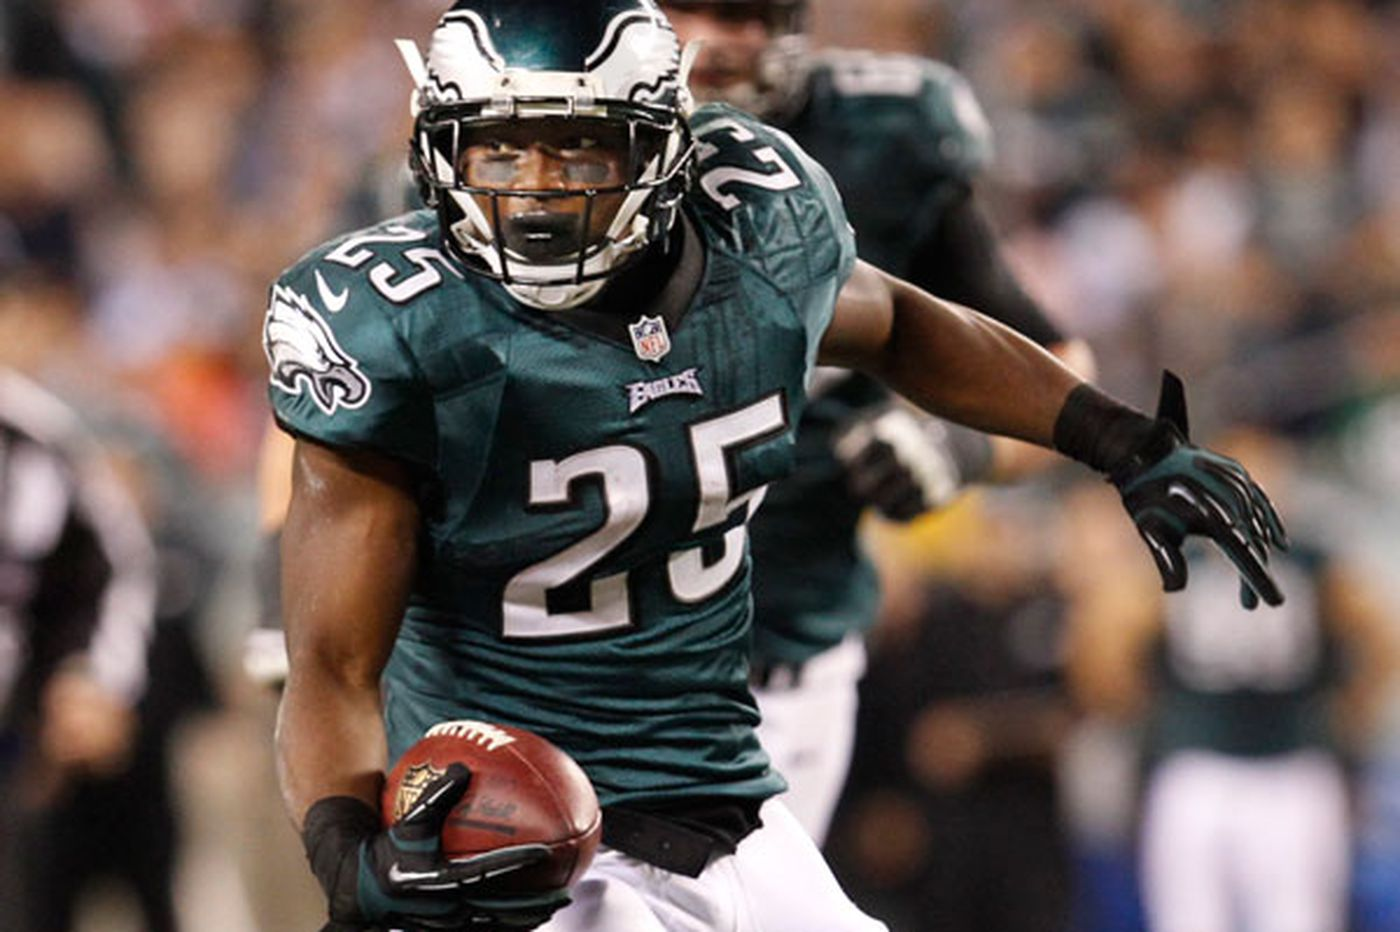 LeSean McCoy cementing his place in Eagles history